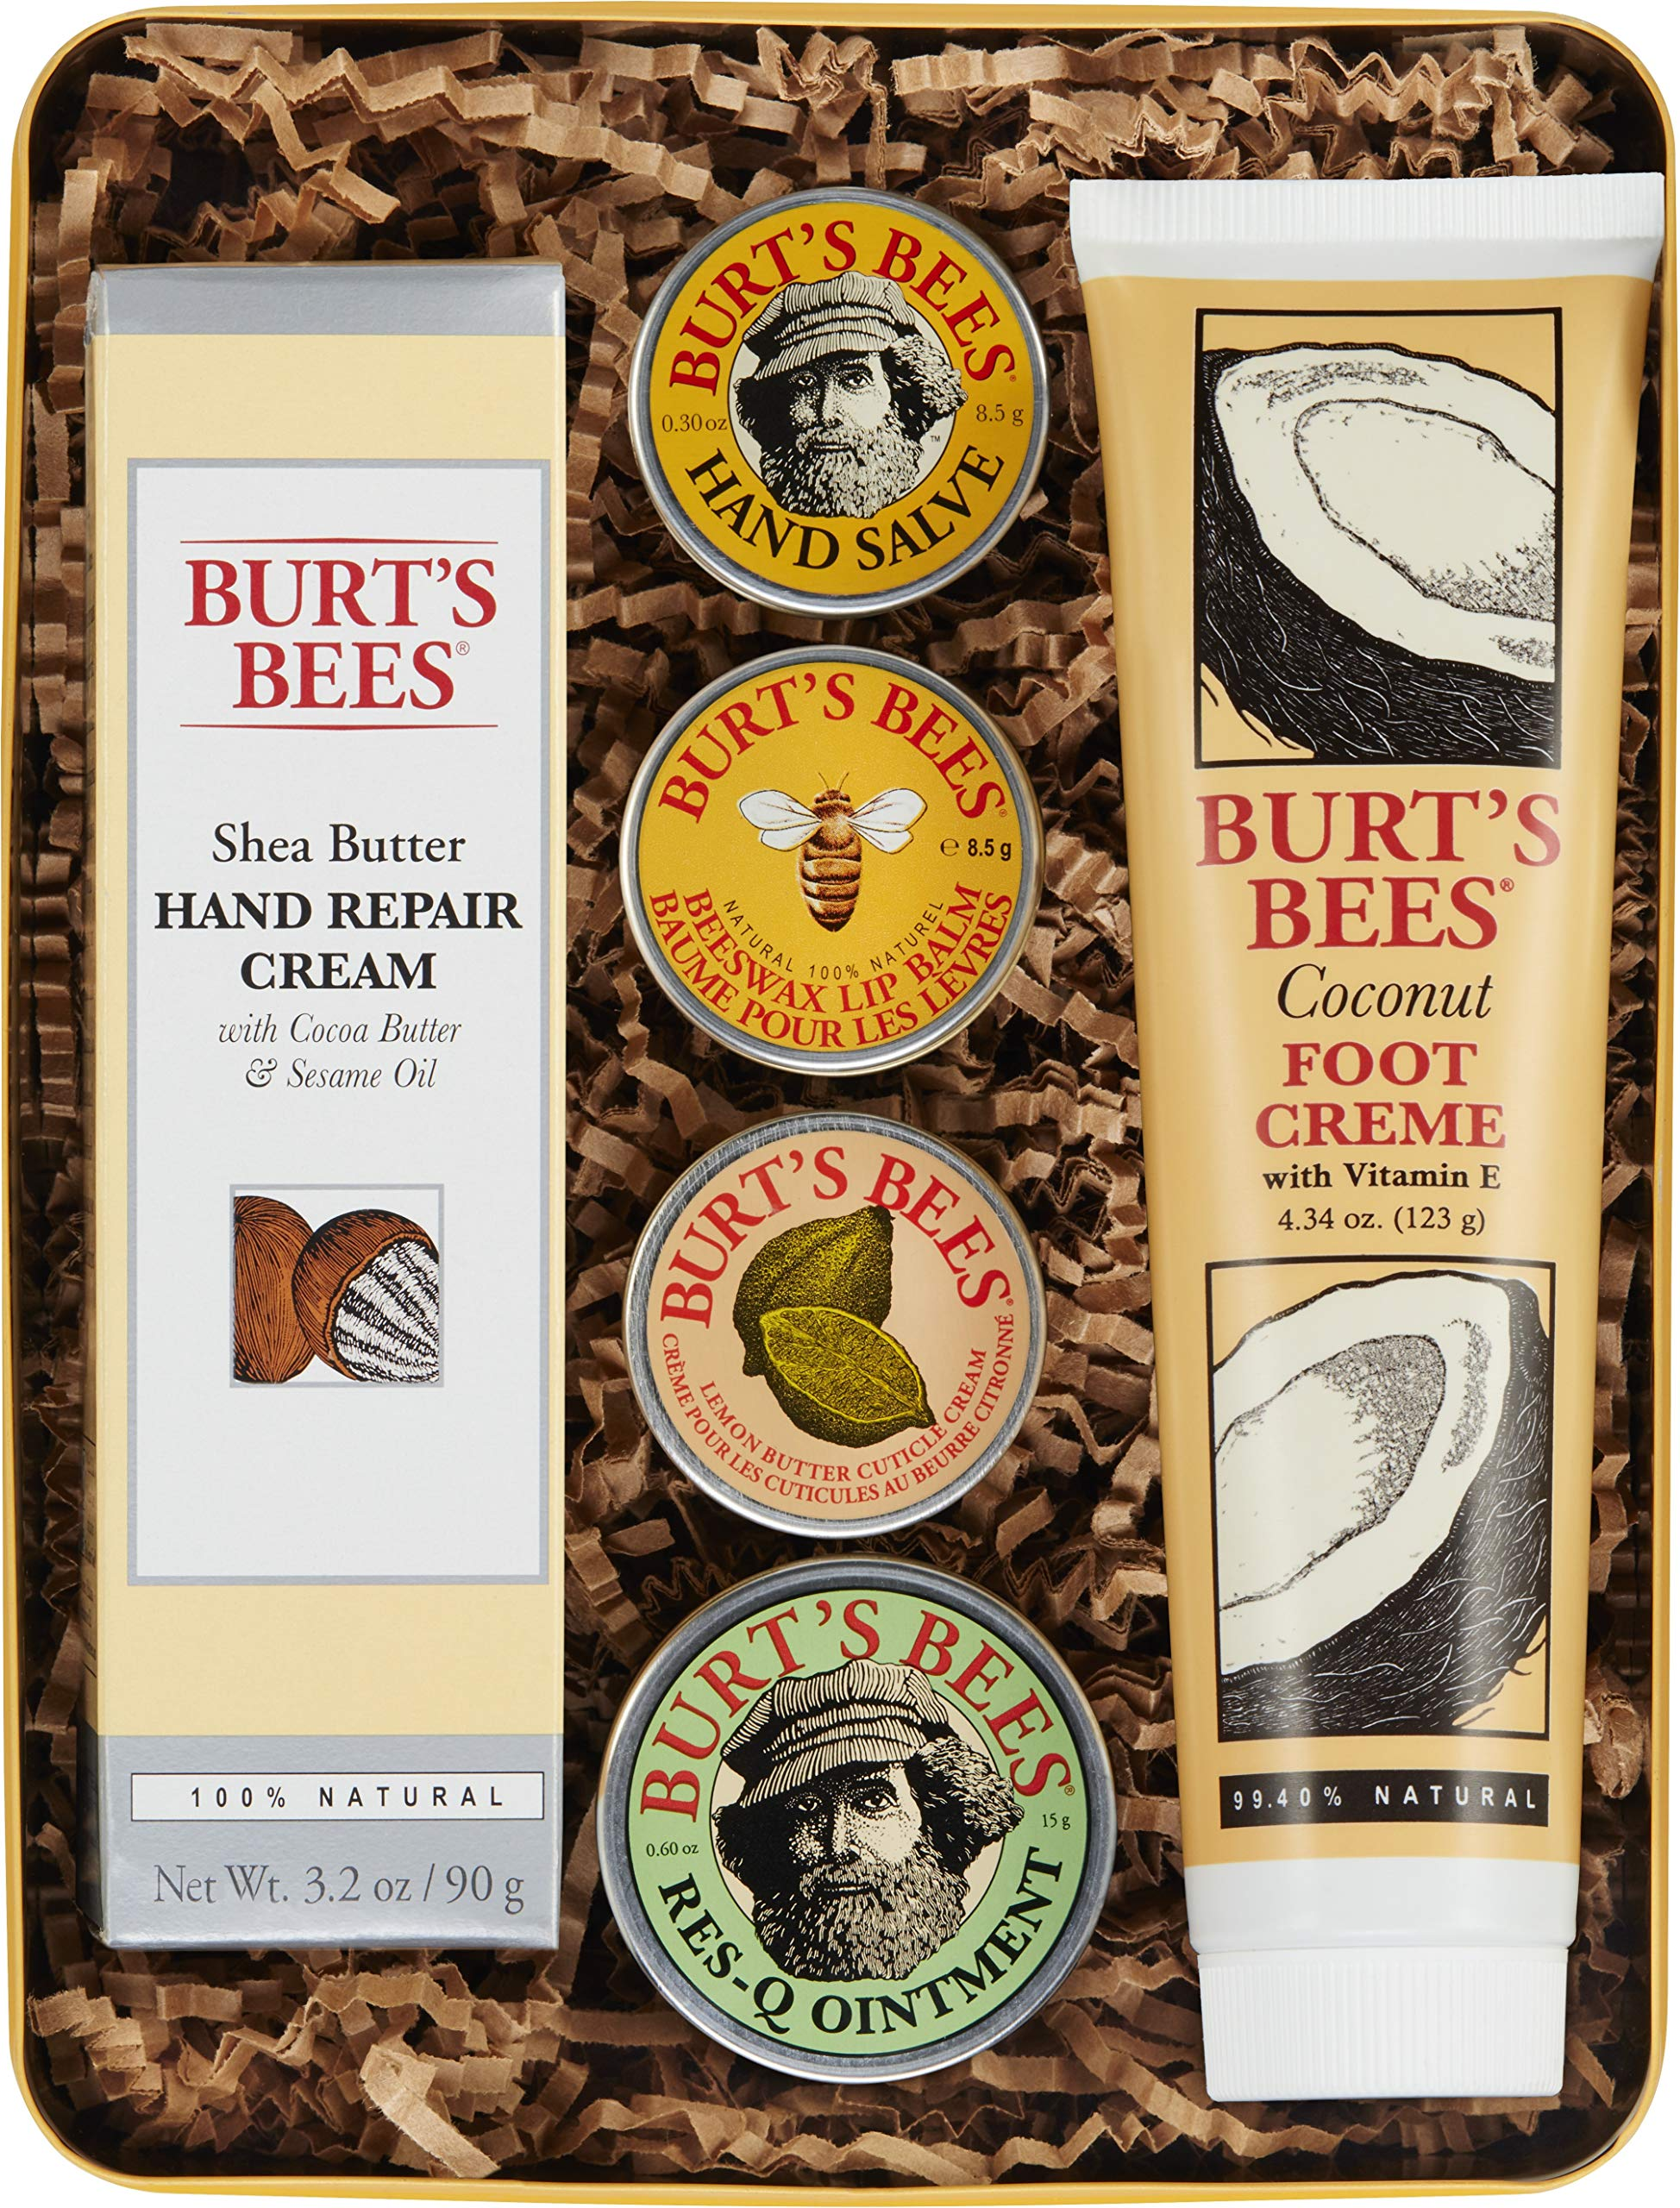 Burt's Bees Classics Gift Set, 6 Products in Giftable Tin - Cuticle Cream, Hand Salve, Lip Balm, Res-Q Ointment, Hand Repair Cream and Foot Cream by Burt's Bees